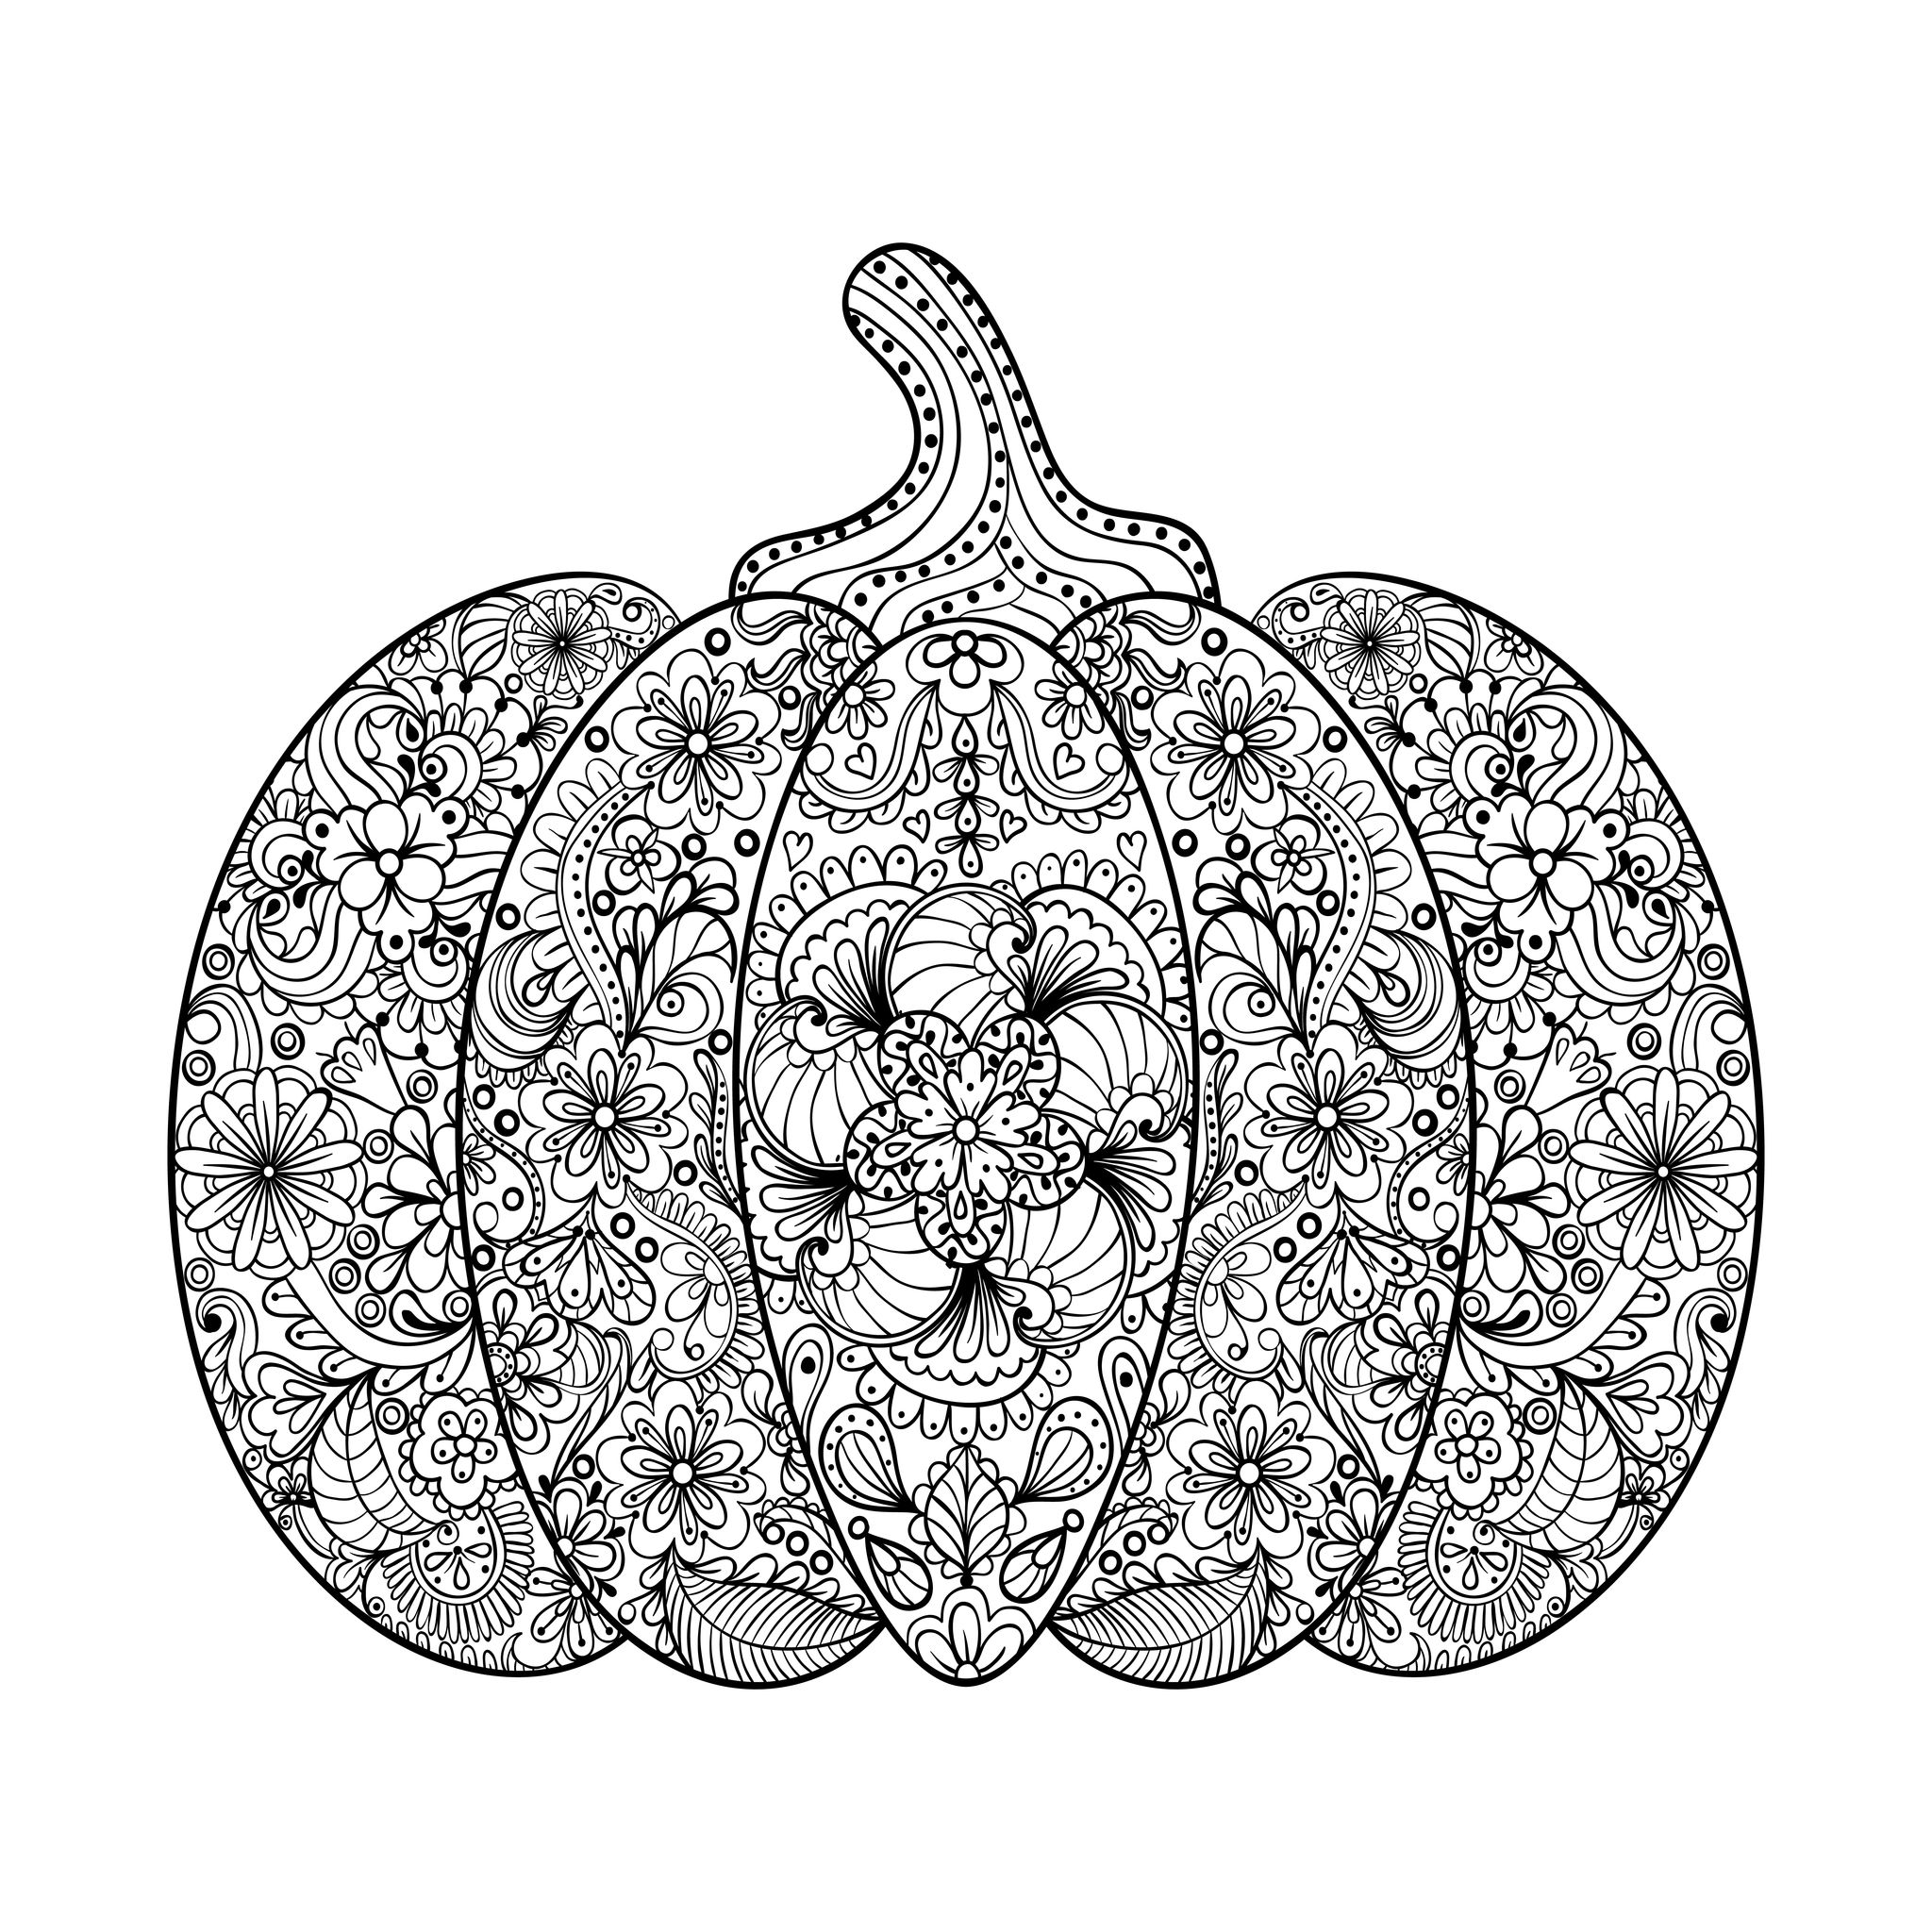 Magnificent Halloween Pumpkin Filled With Flowered Patterns